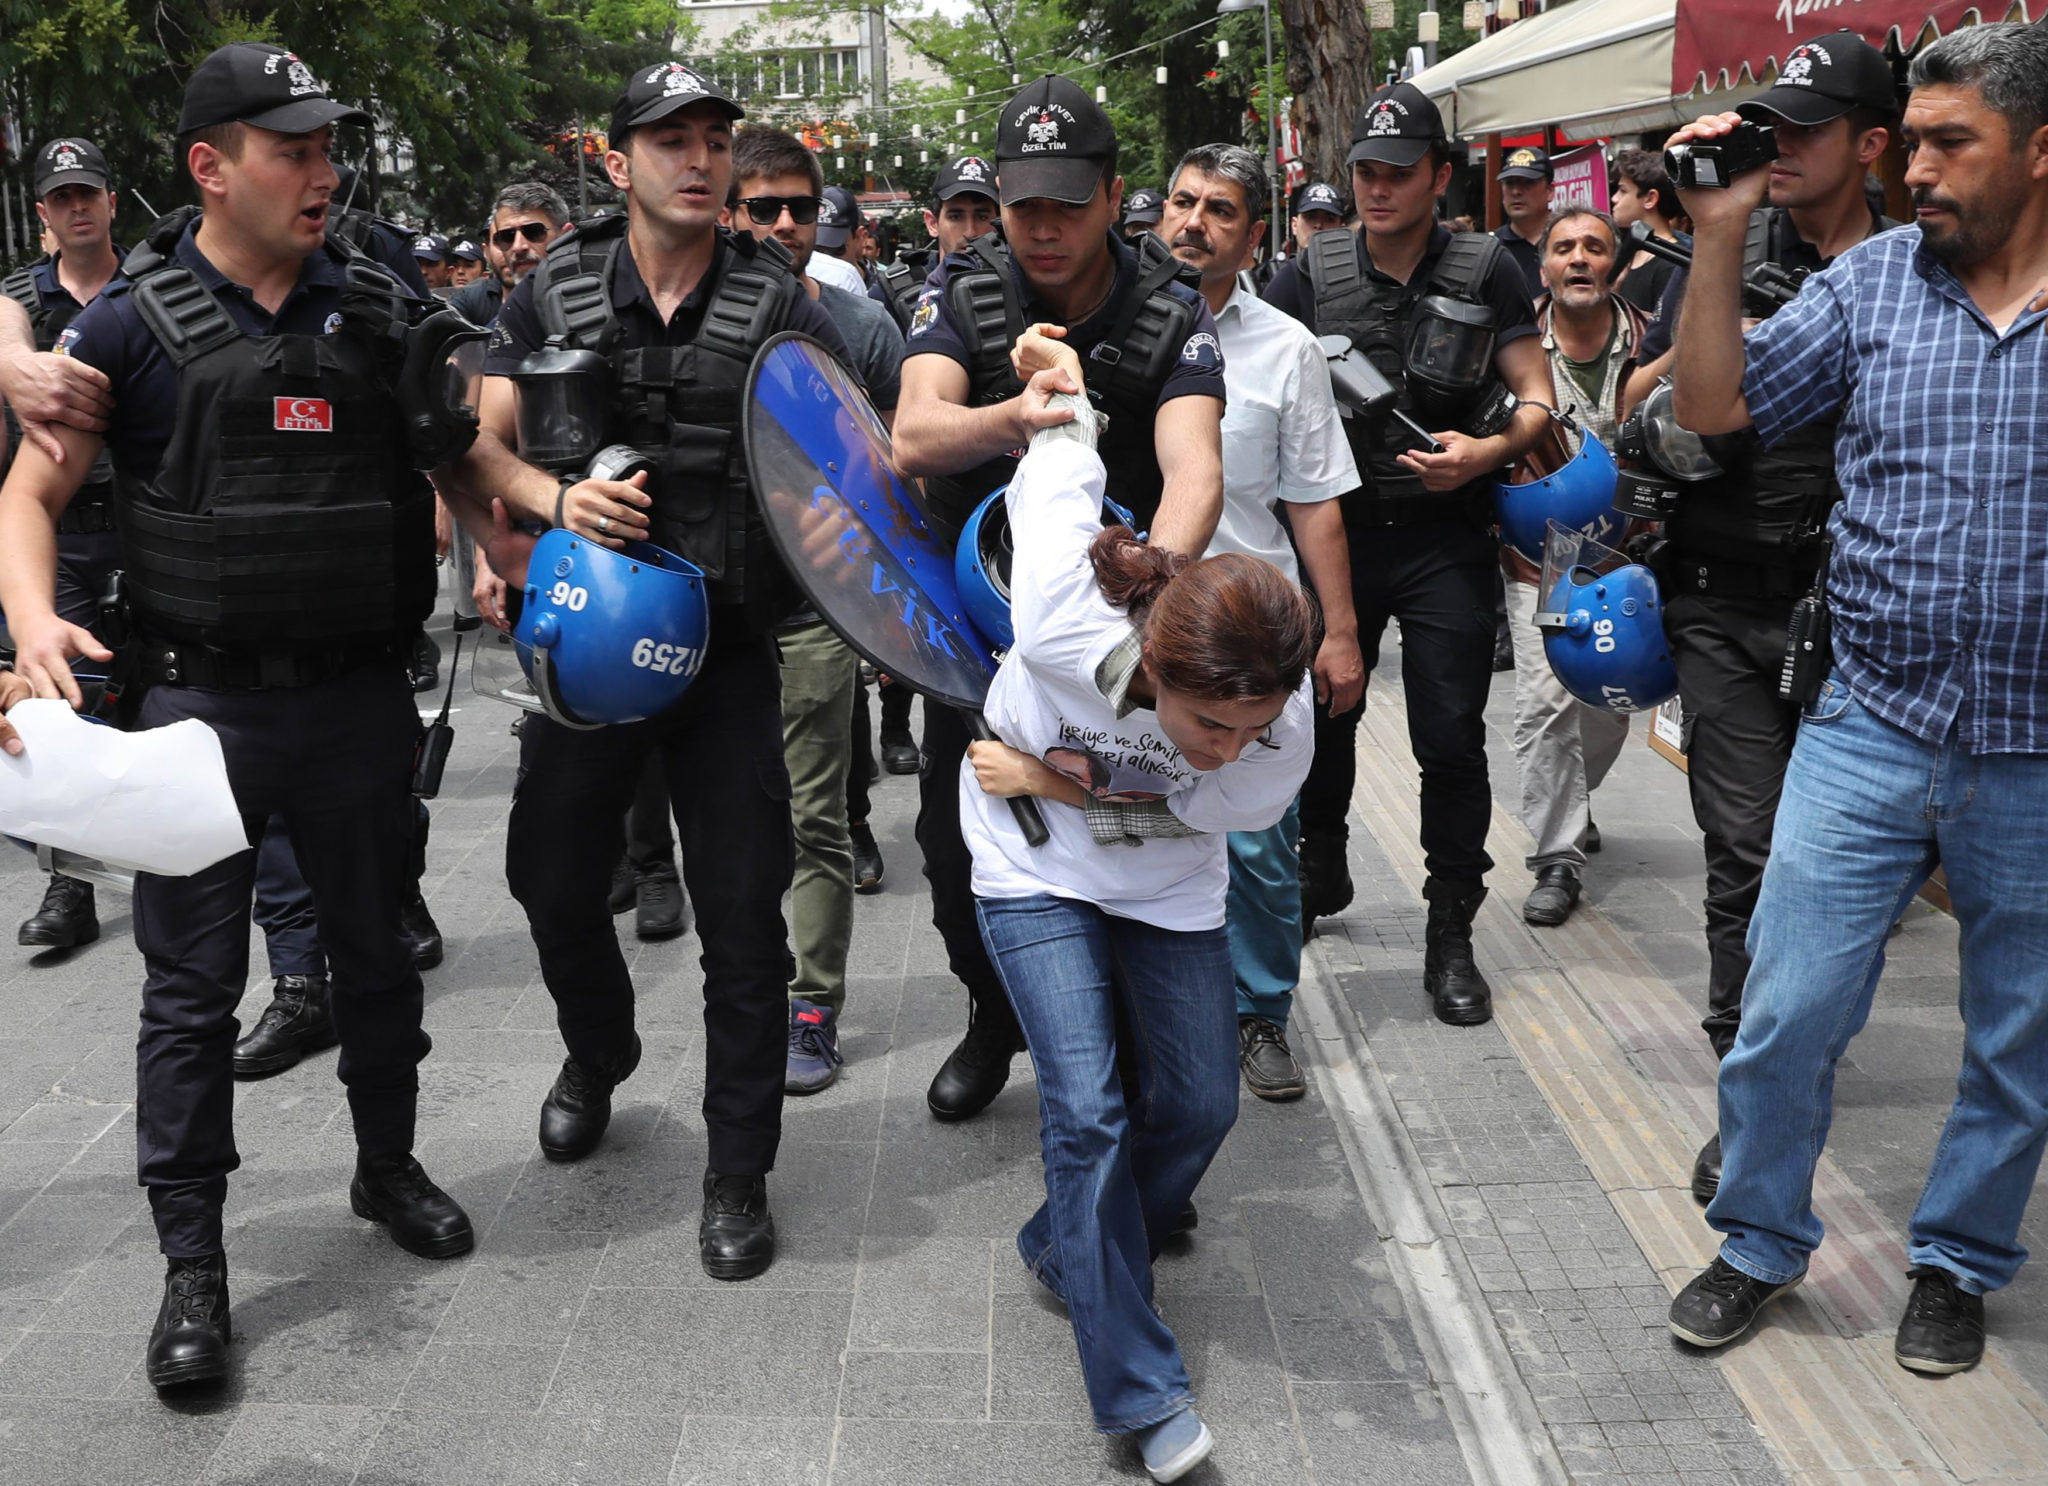 Turkey: Government crackdown suffocating civil society through deliberate climate of fear